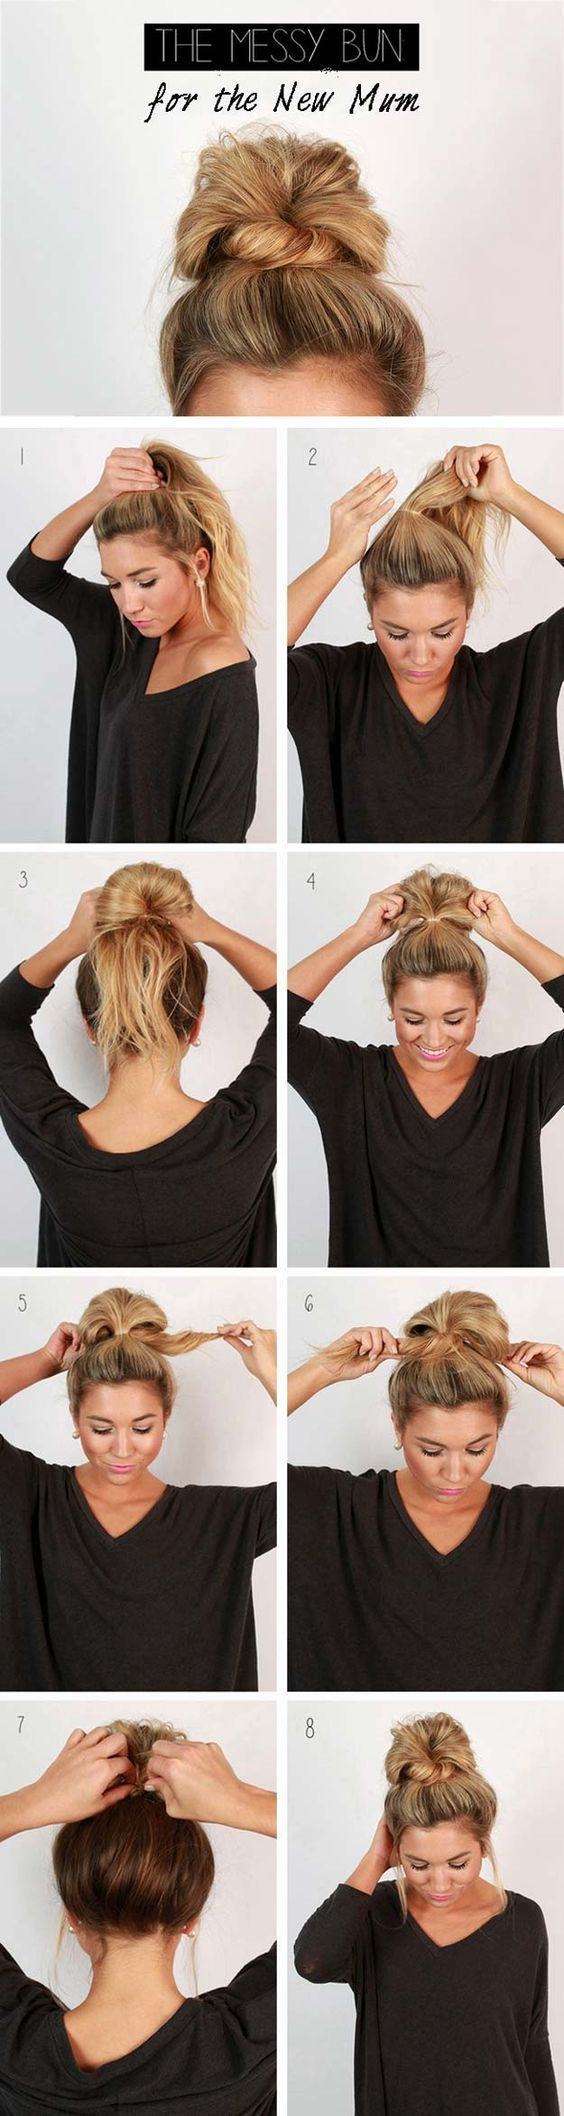 Stupendous 1000 Ideas About Formal Bun On Pinterest Hairstyles With Hairstyles For Women Draintrainus